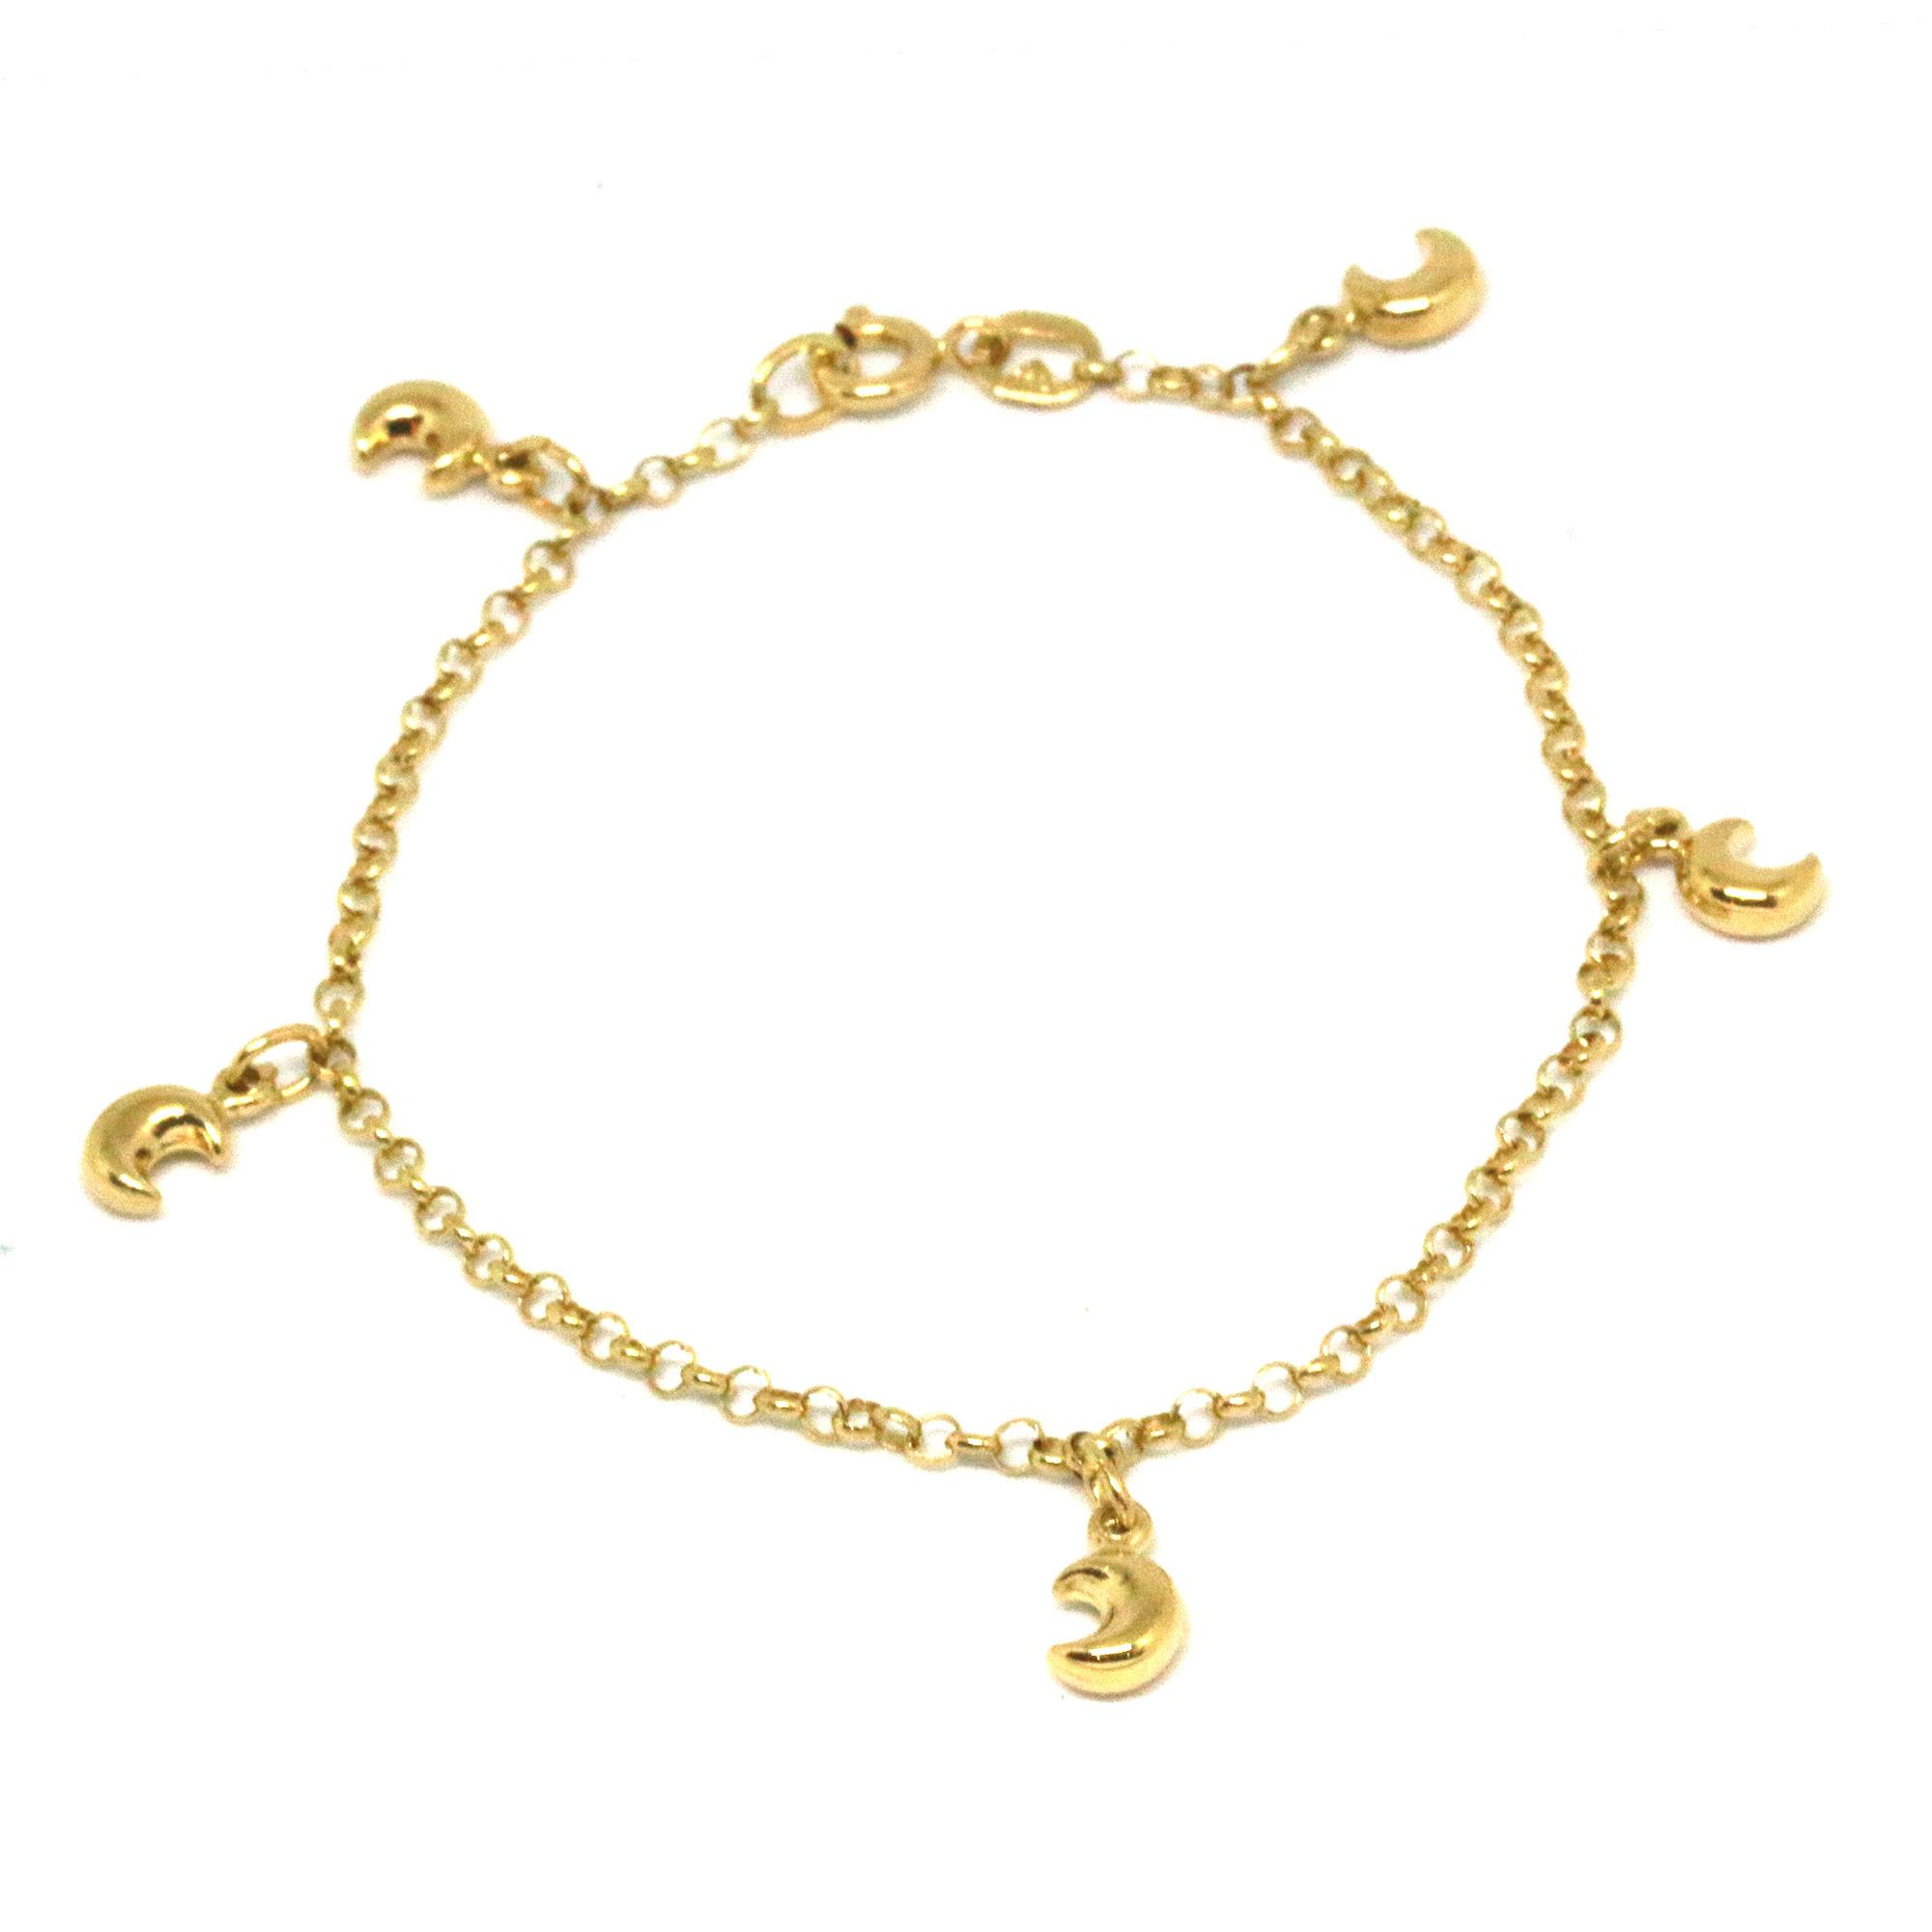 infinity hand bracelet initials fullxfull filled p heart initial stamped tags custom gold anklet layered jewelry il